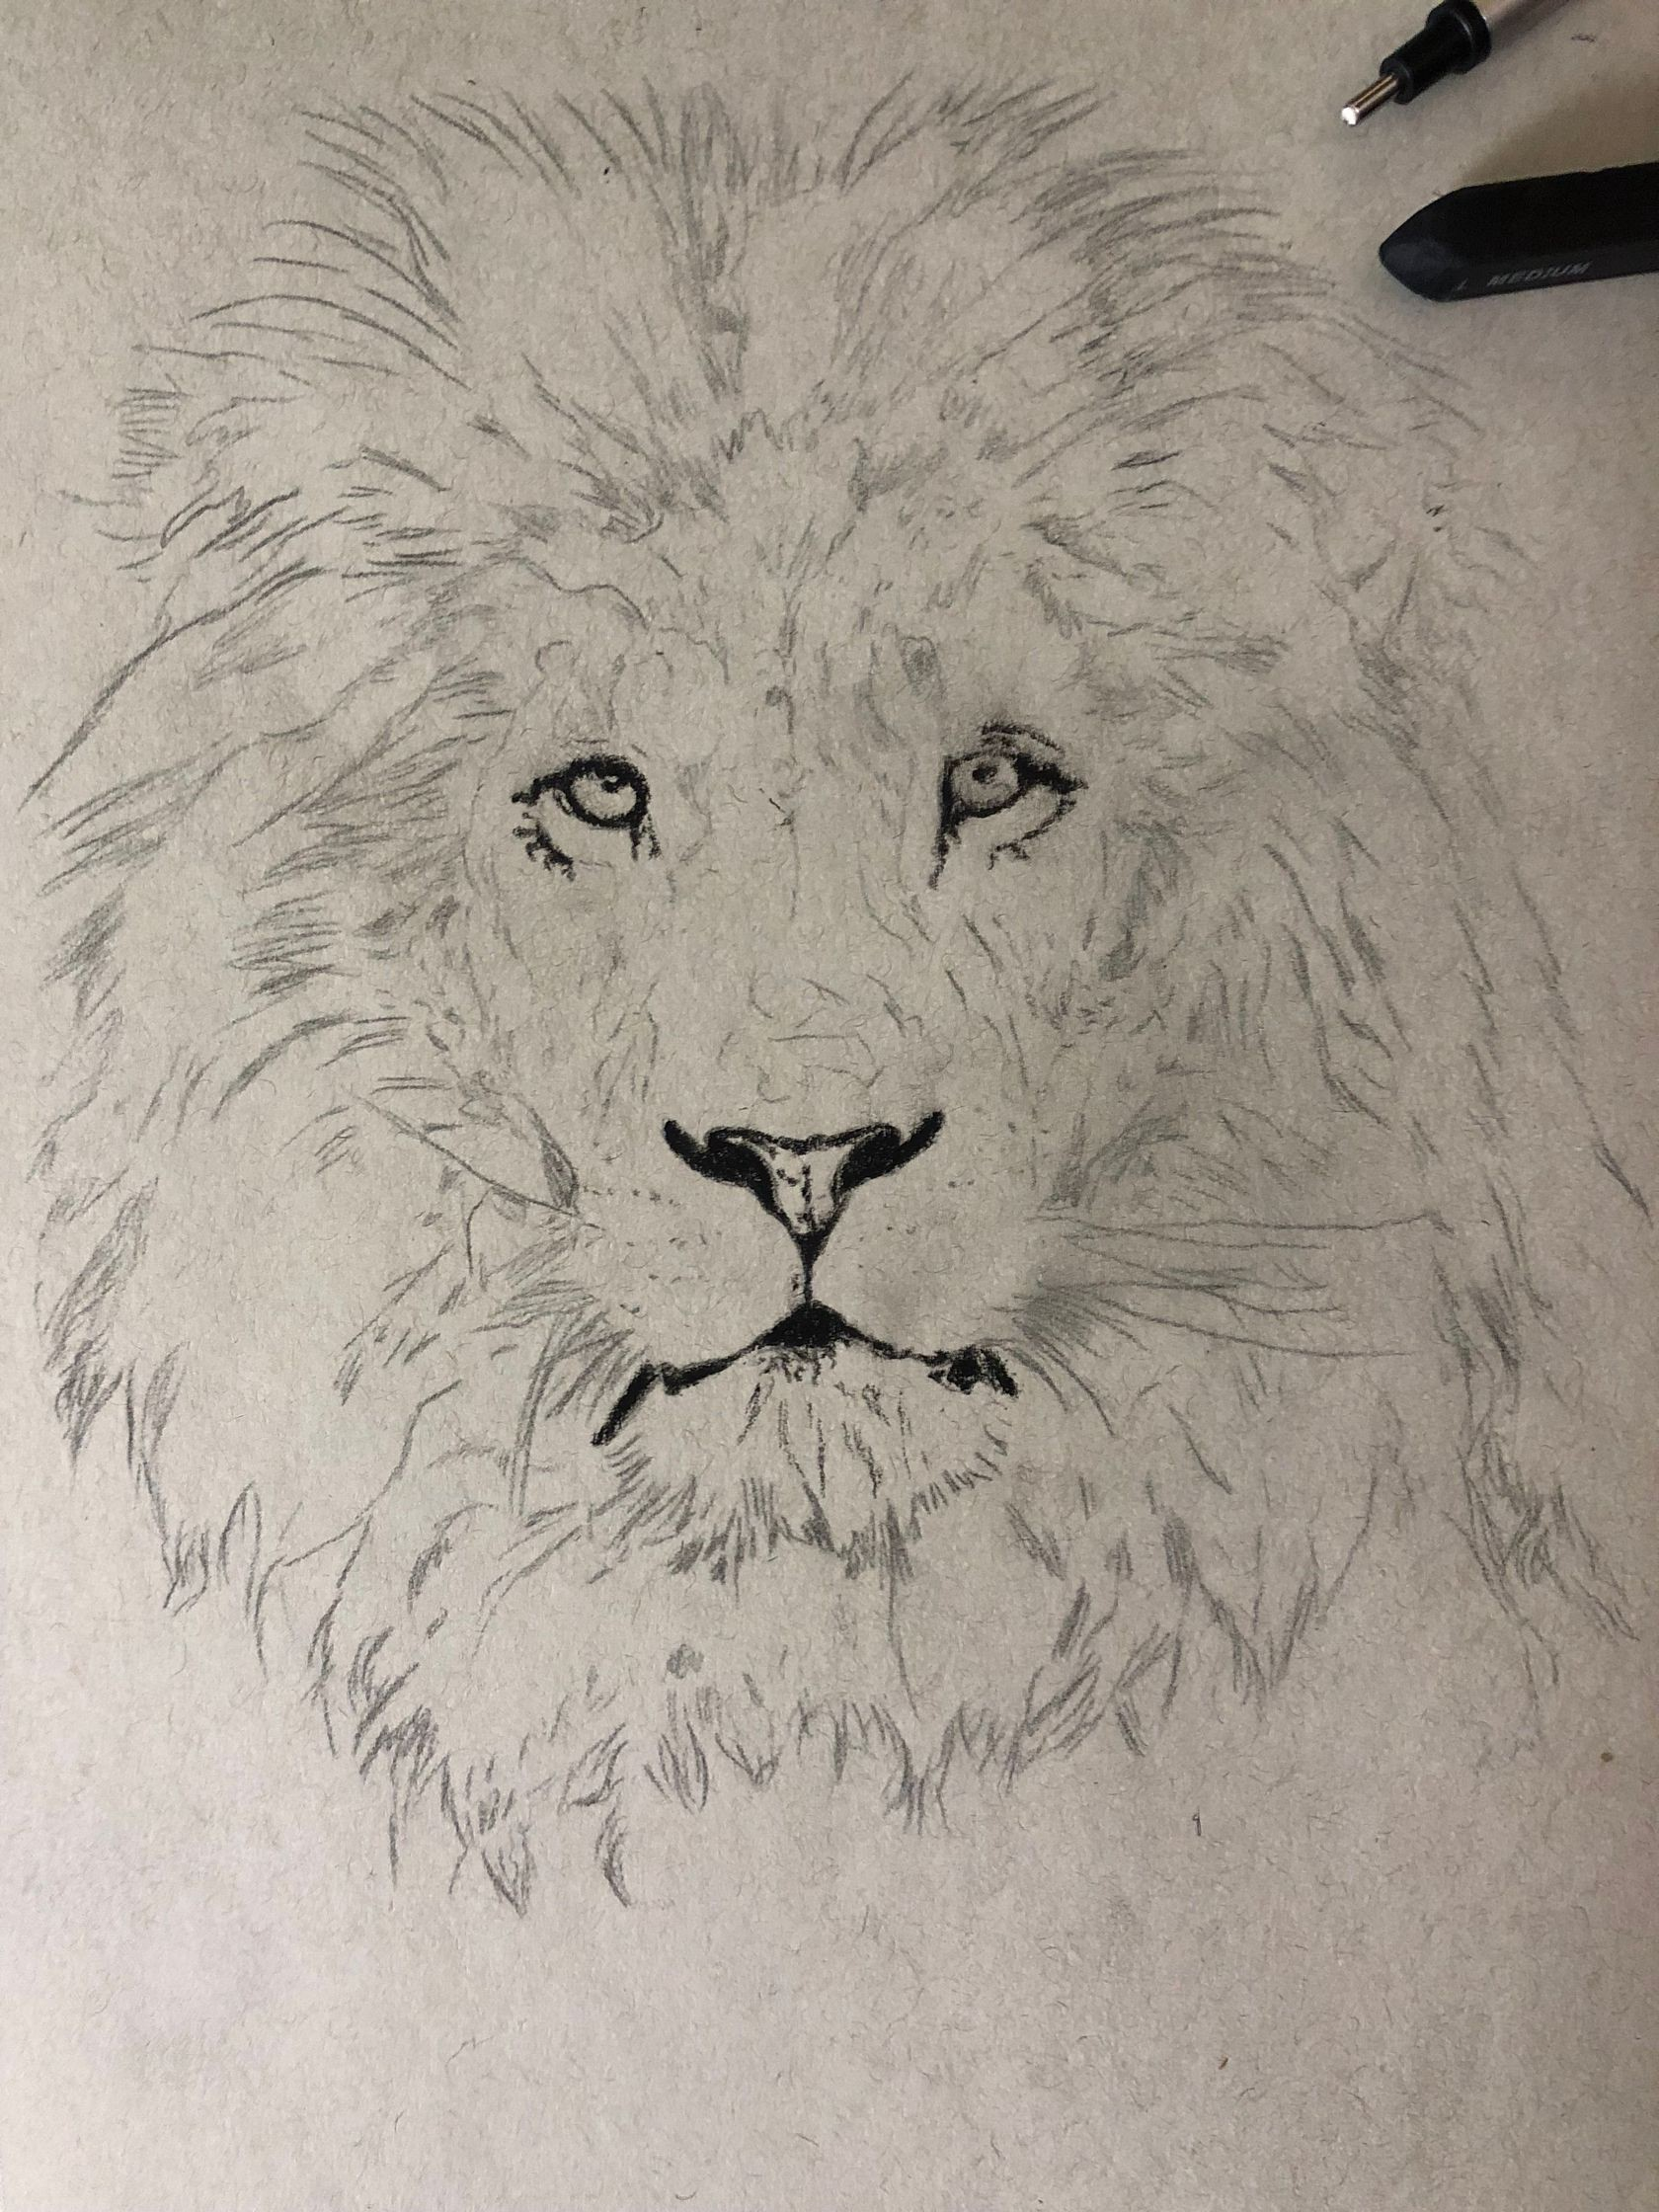 Drawing A Lion Realistic Art With Charcoal By Simon Medium Similar with lion outline png. drawing a lion realistic art with